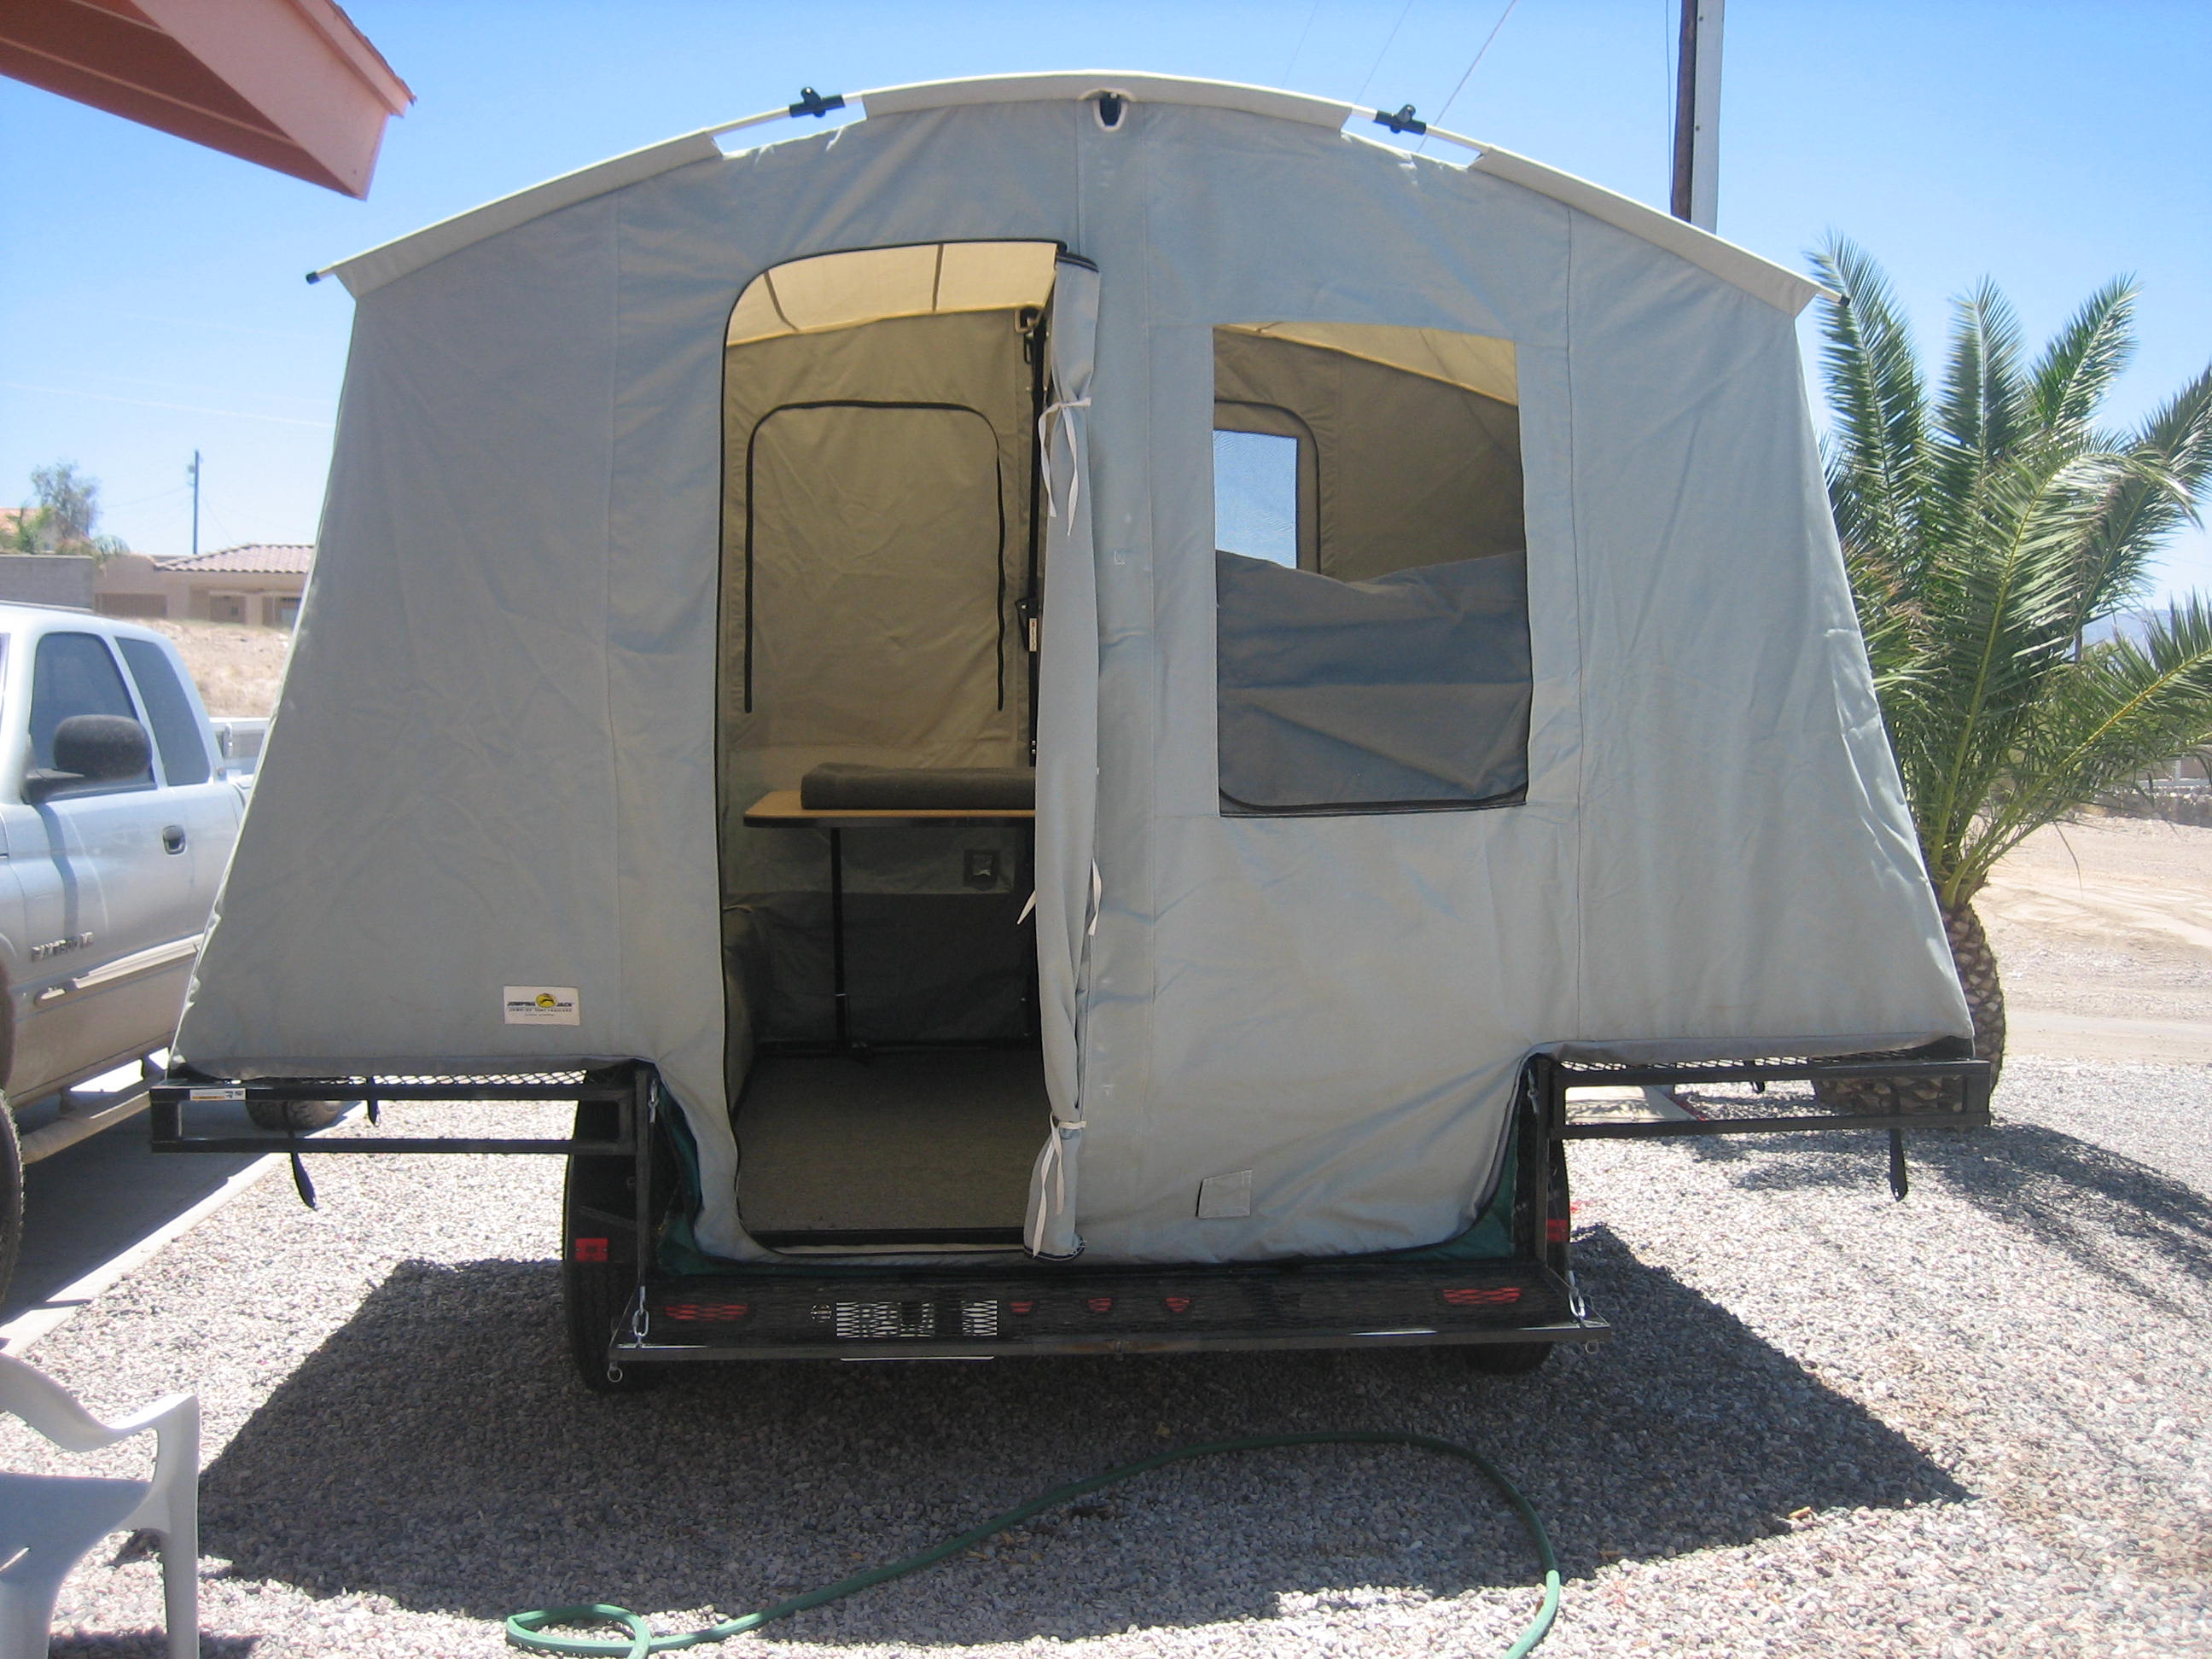 Jumping Jack Trailer - Classified Ads - CouesWhitetail.com ...